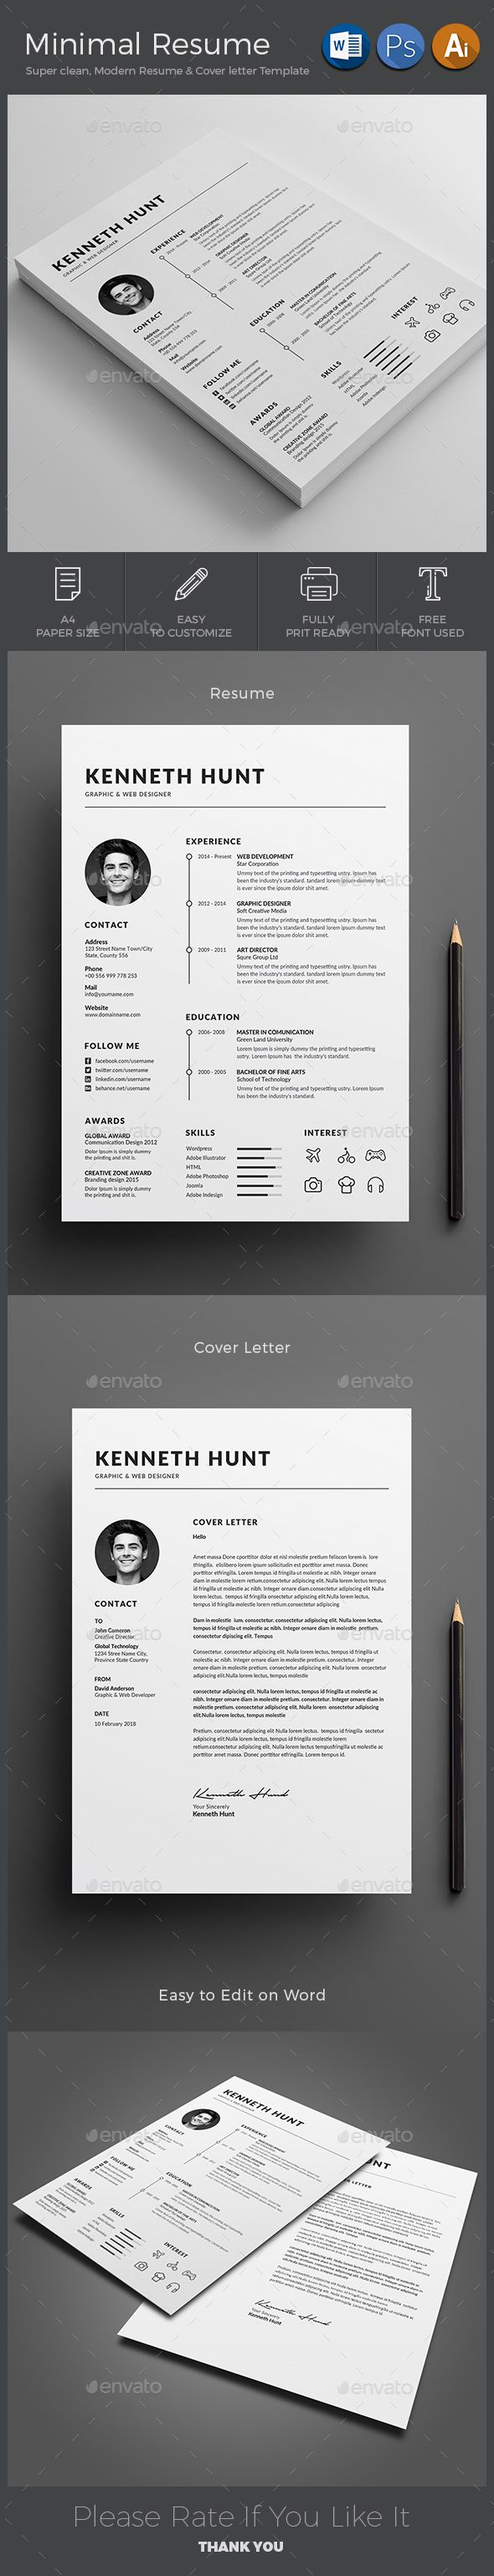 hairdresser resume%0A  Resume  Resumes Stationery Download here  https   graphicriver net